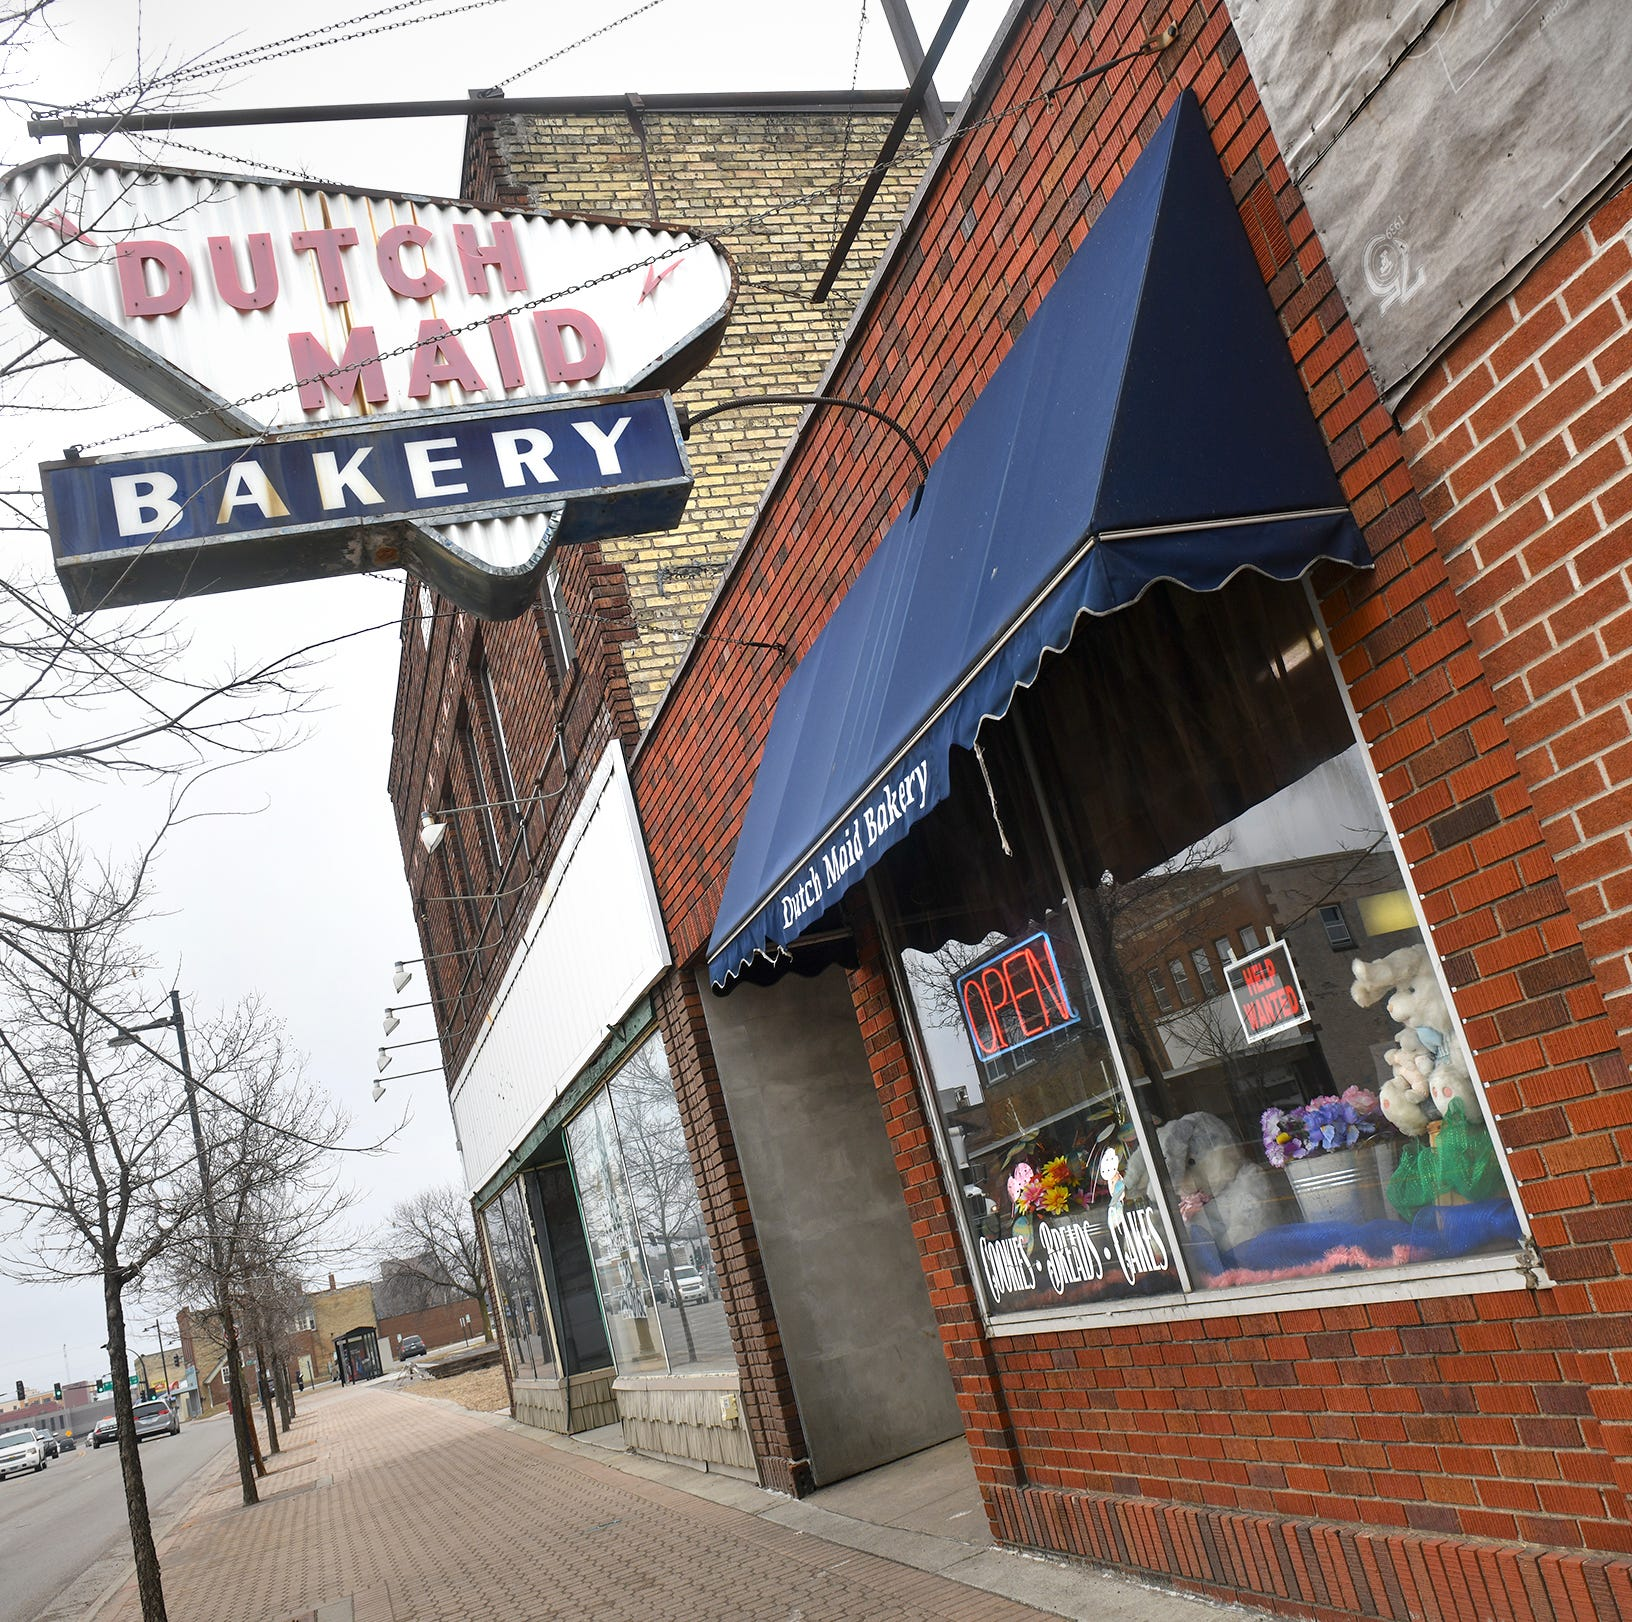 Dutch Maid Bakery aims for late May move to Sauk Rapids